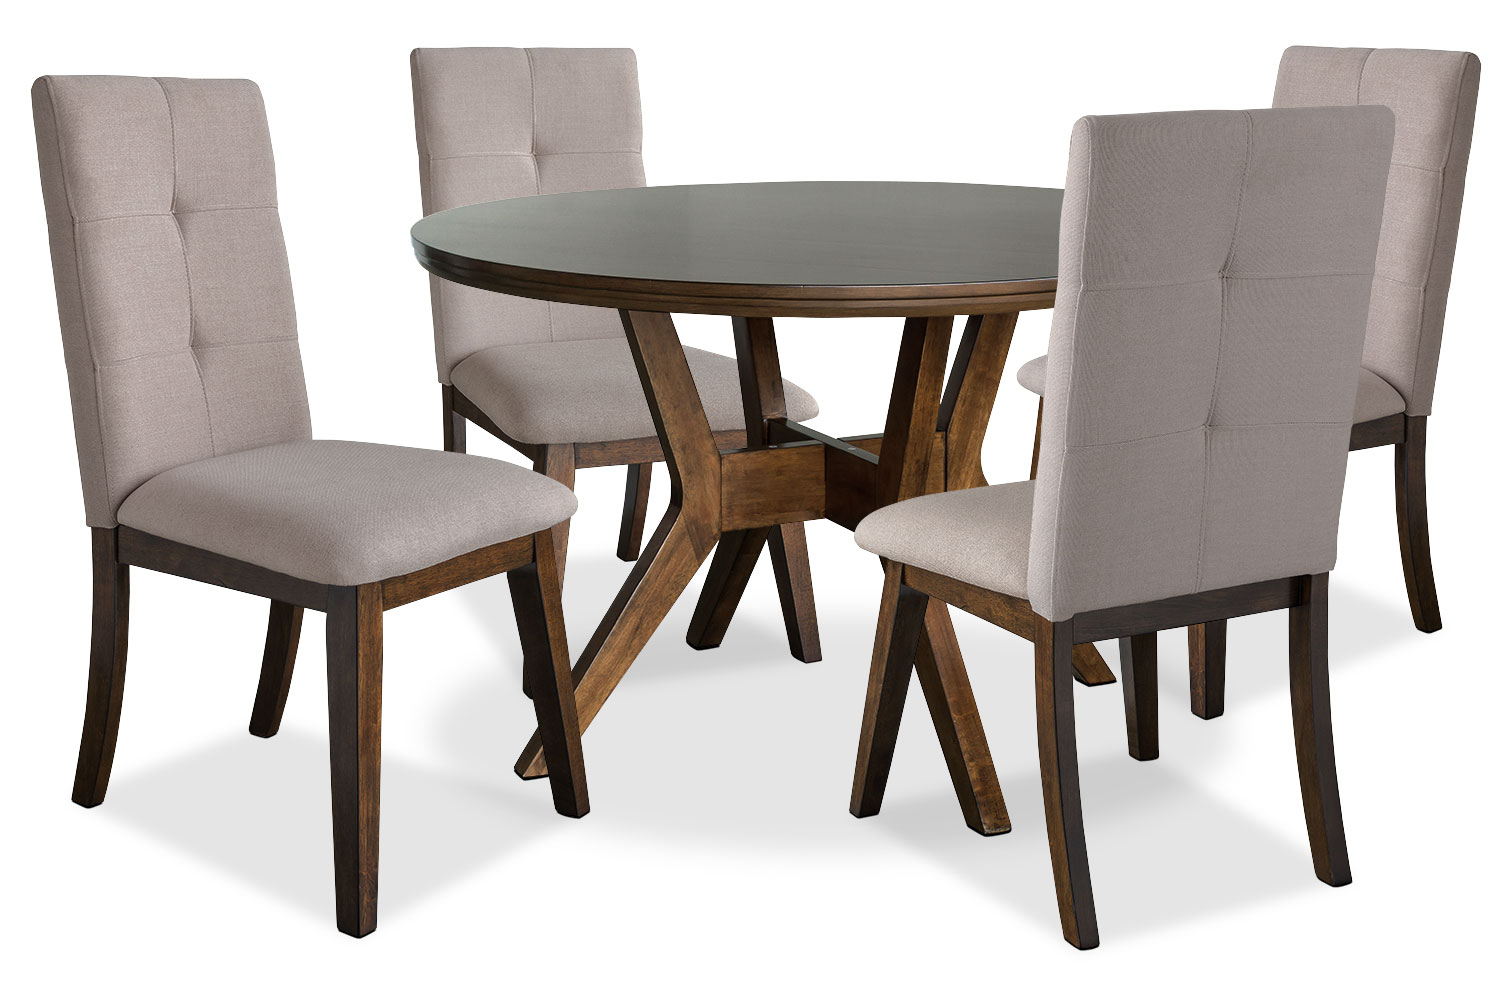 Dining Room Furniture - Chelsea 5-Piece Round Dining Table Package with Beige Chairs